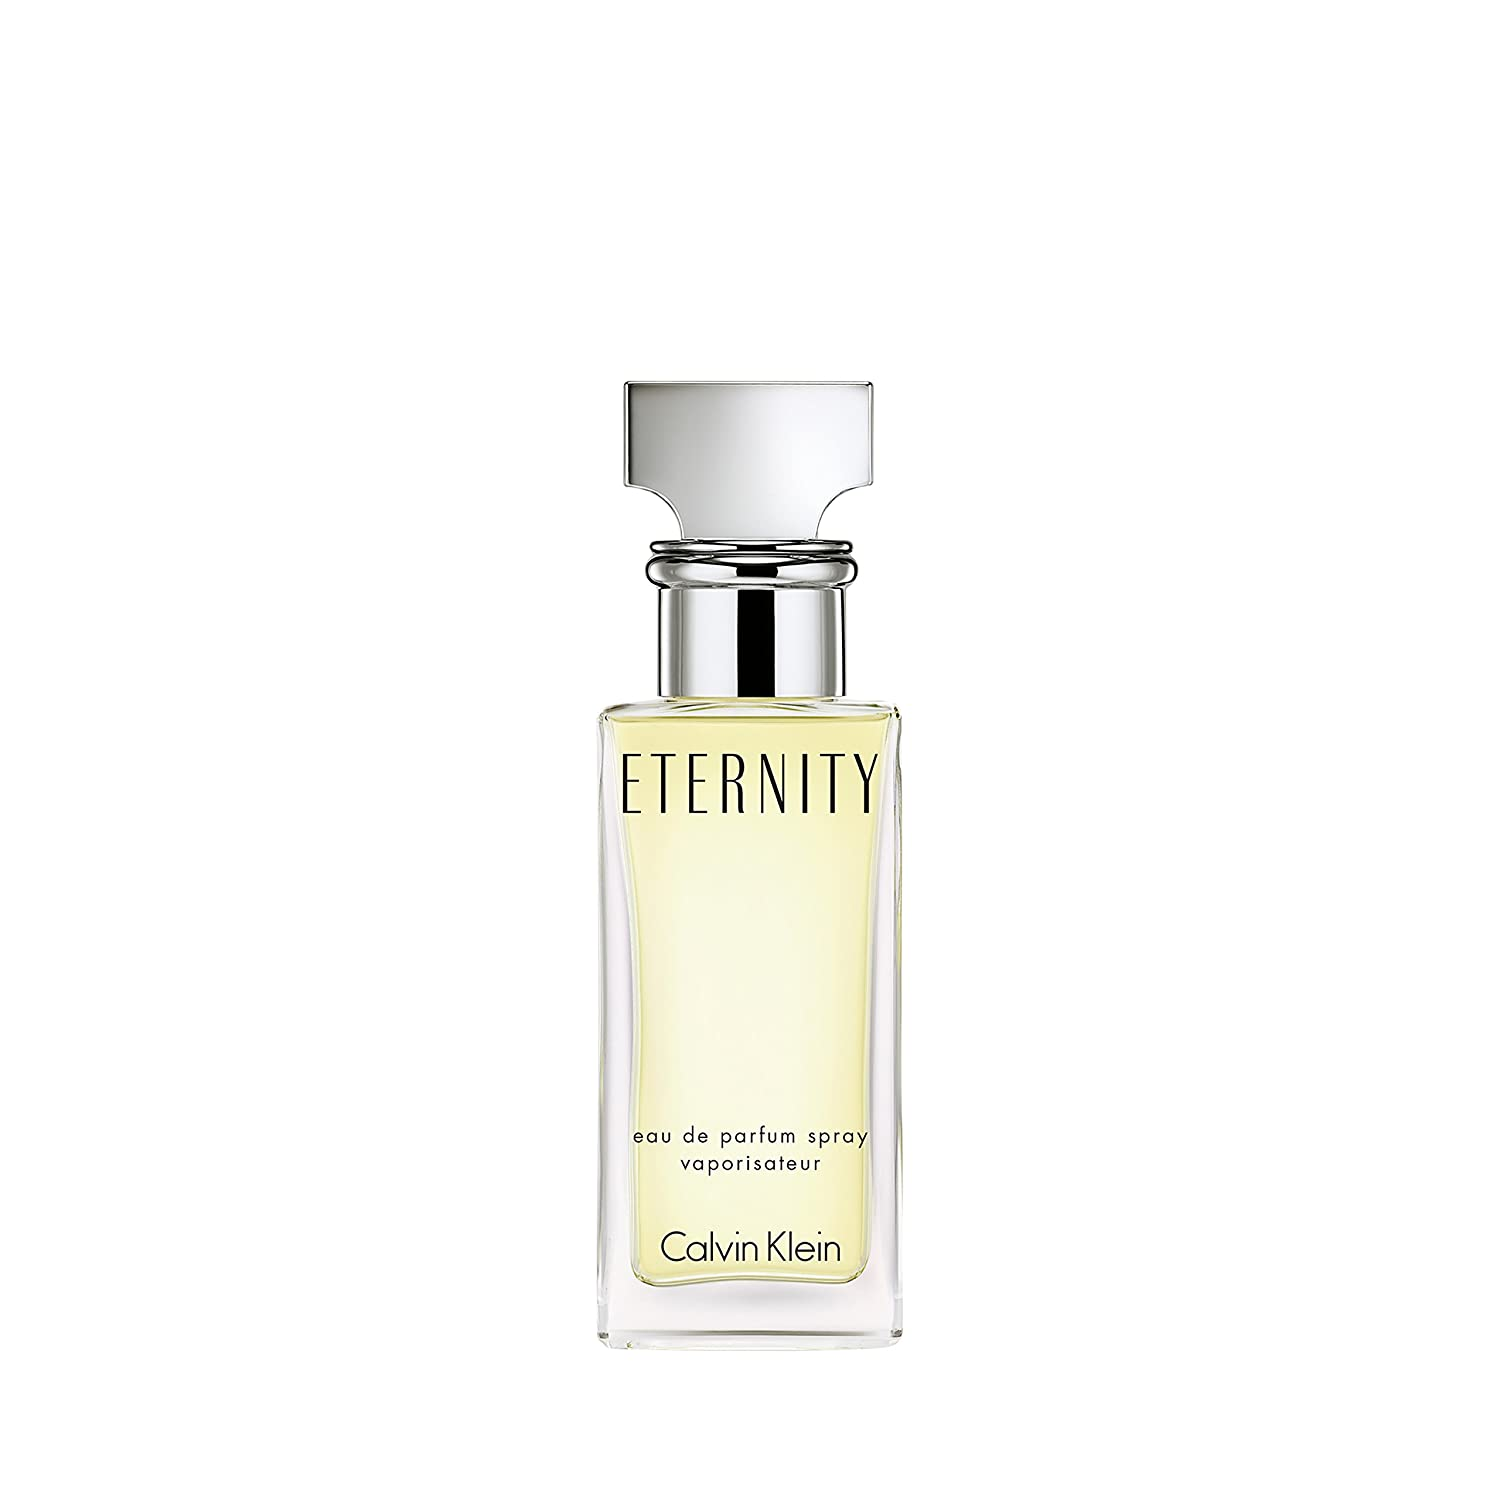 Calvin Klein Eternity for Women Eau de Parfum, 30 ml 123226 16700 new fragrancecity website perfume